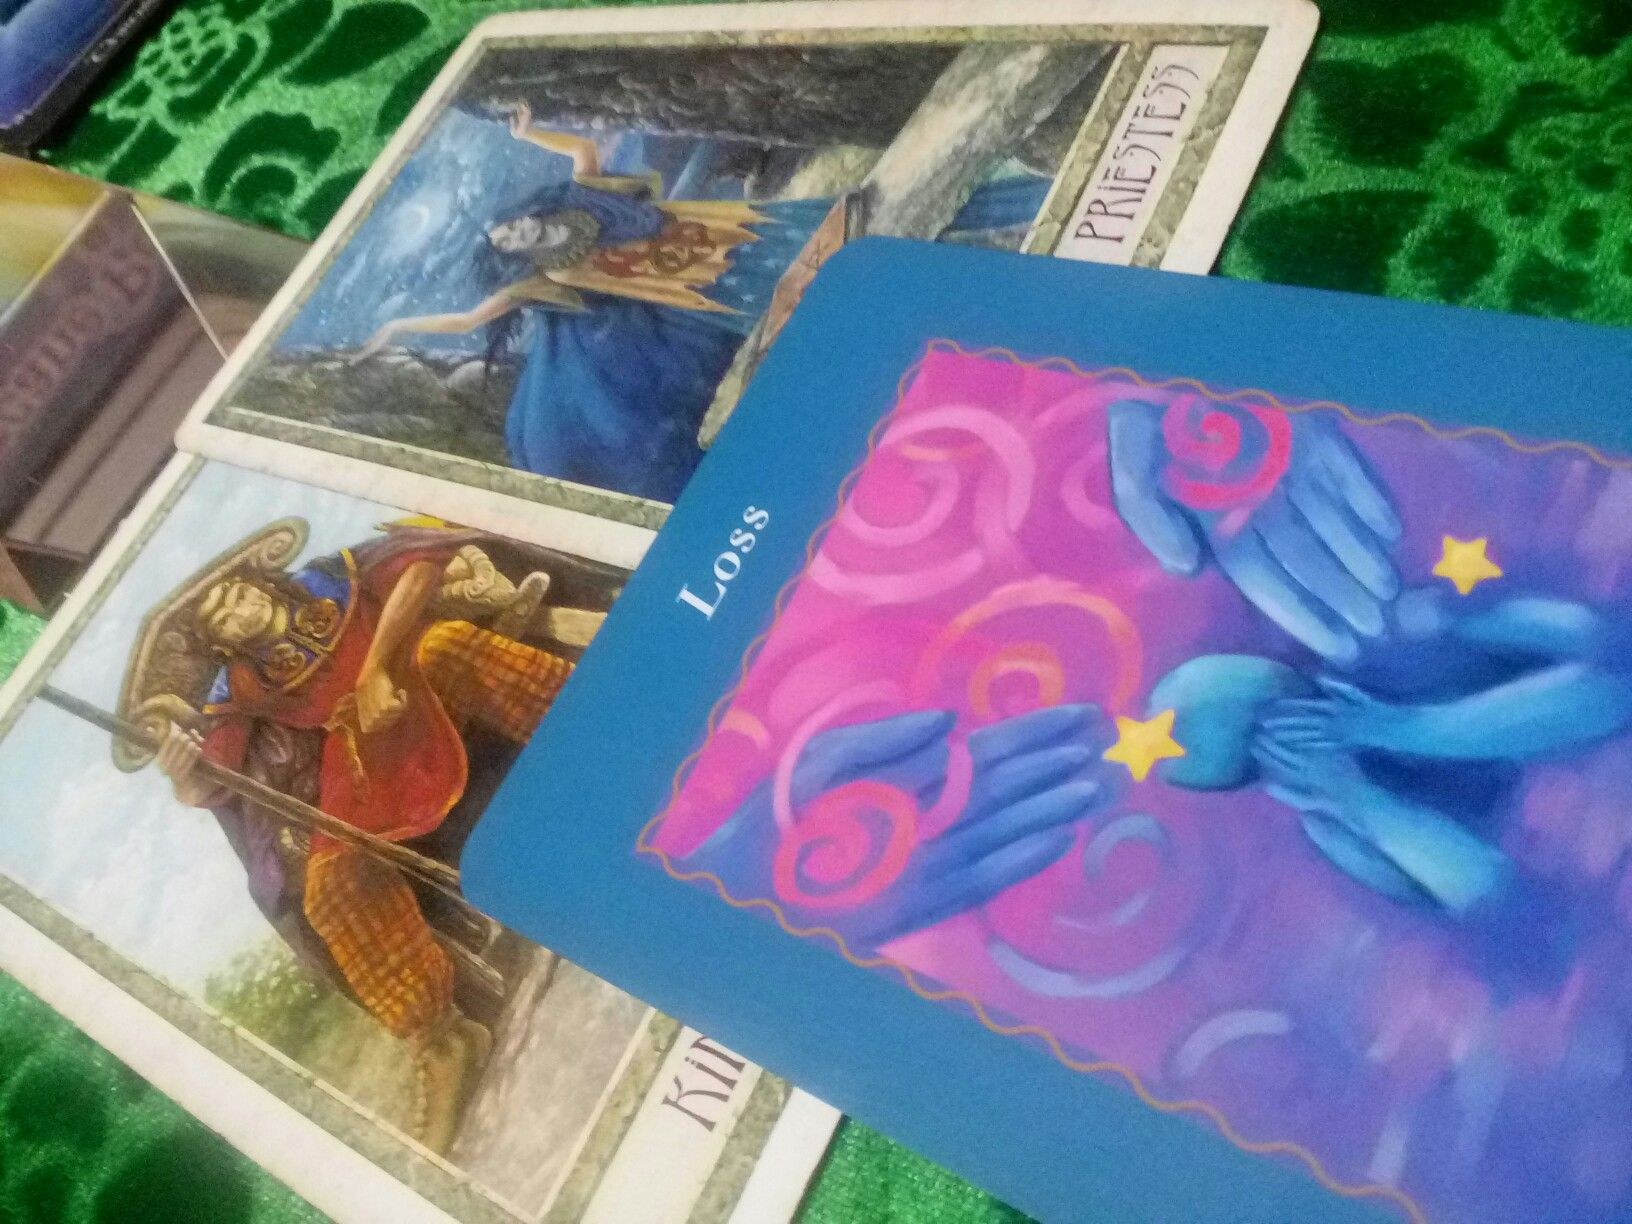 business problems marriage problems tarot cards readings